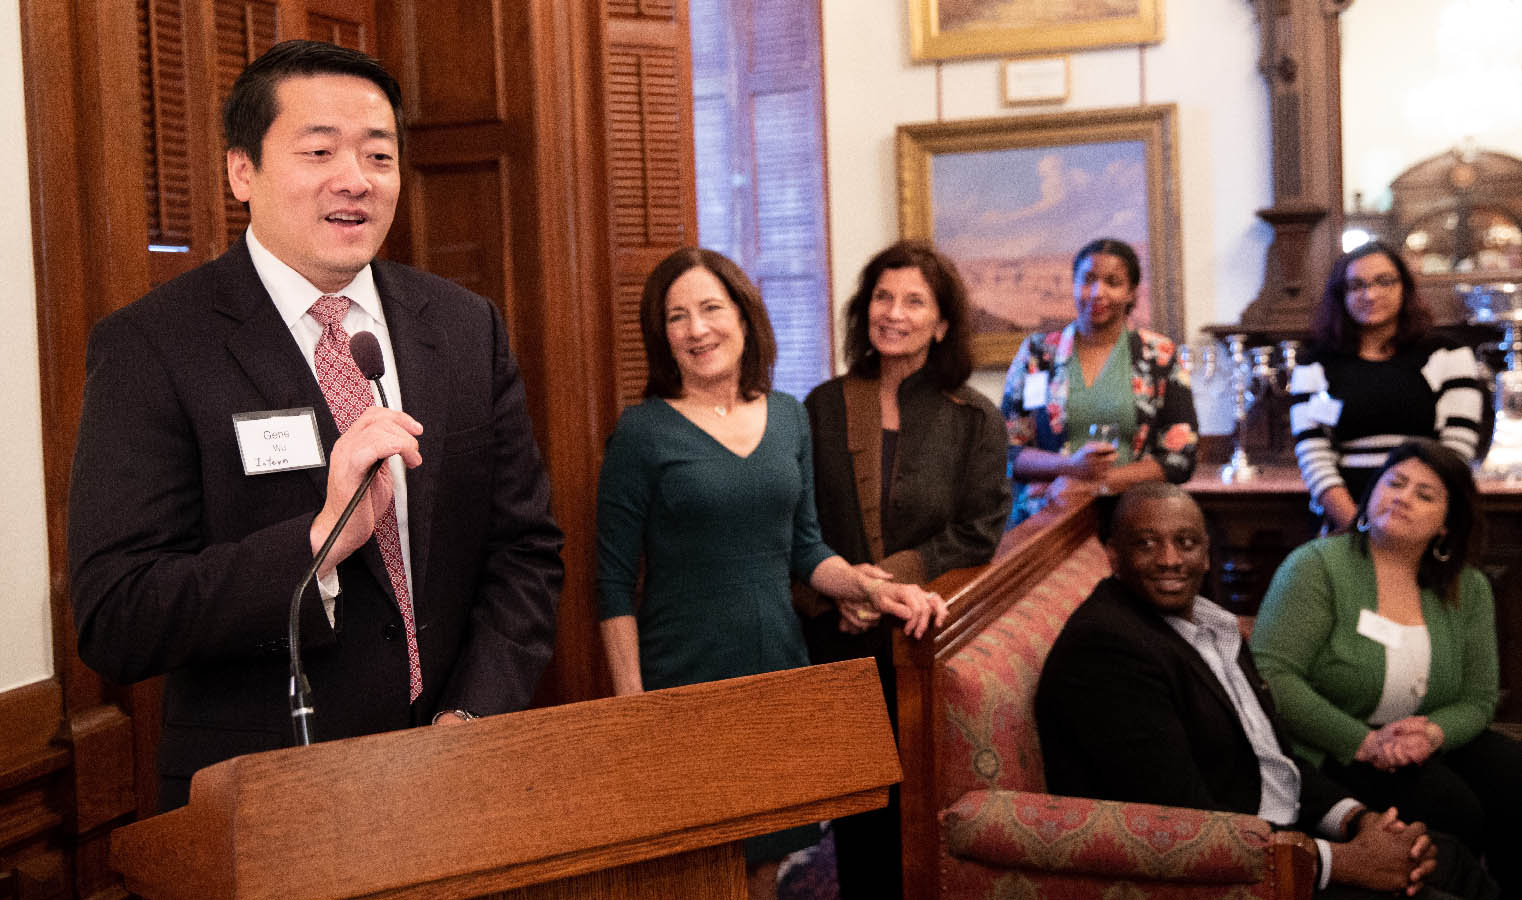 State Rep. Gene Wu (MPAff '04), a Democrat who represents Texas's 137th House District, speaks to Under the Domeaudience, including Professor Sherri Greenberg and LBJ School Dean Angela Evans